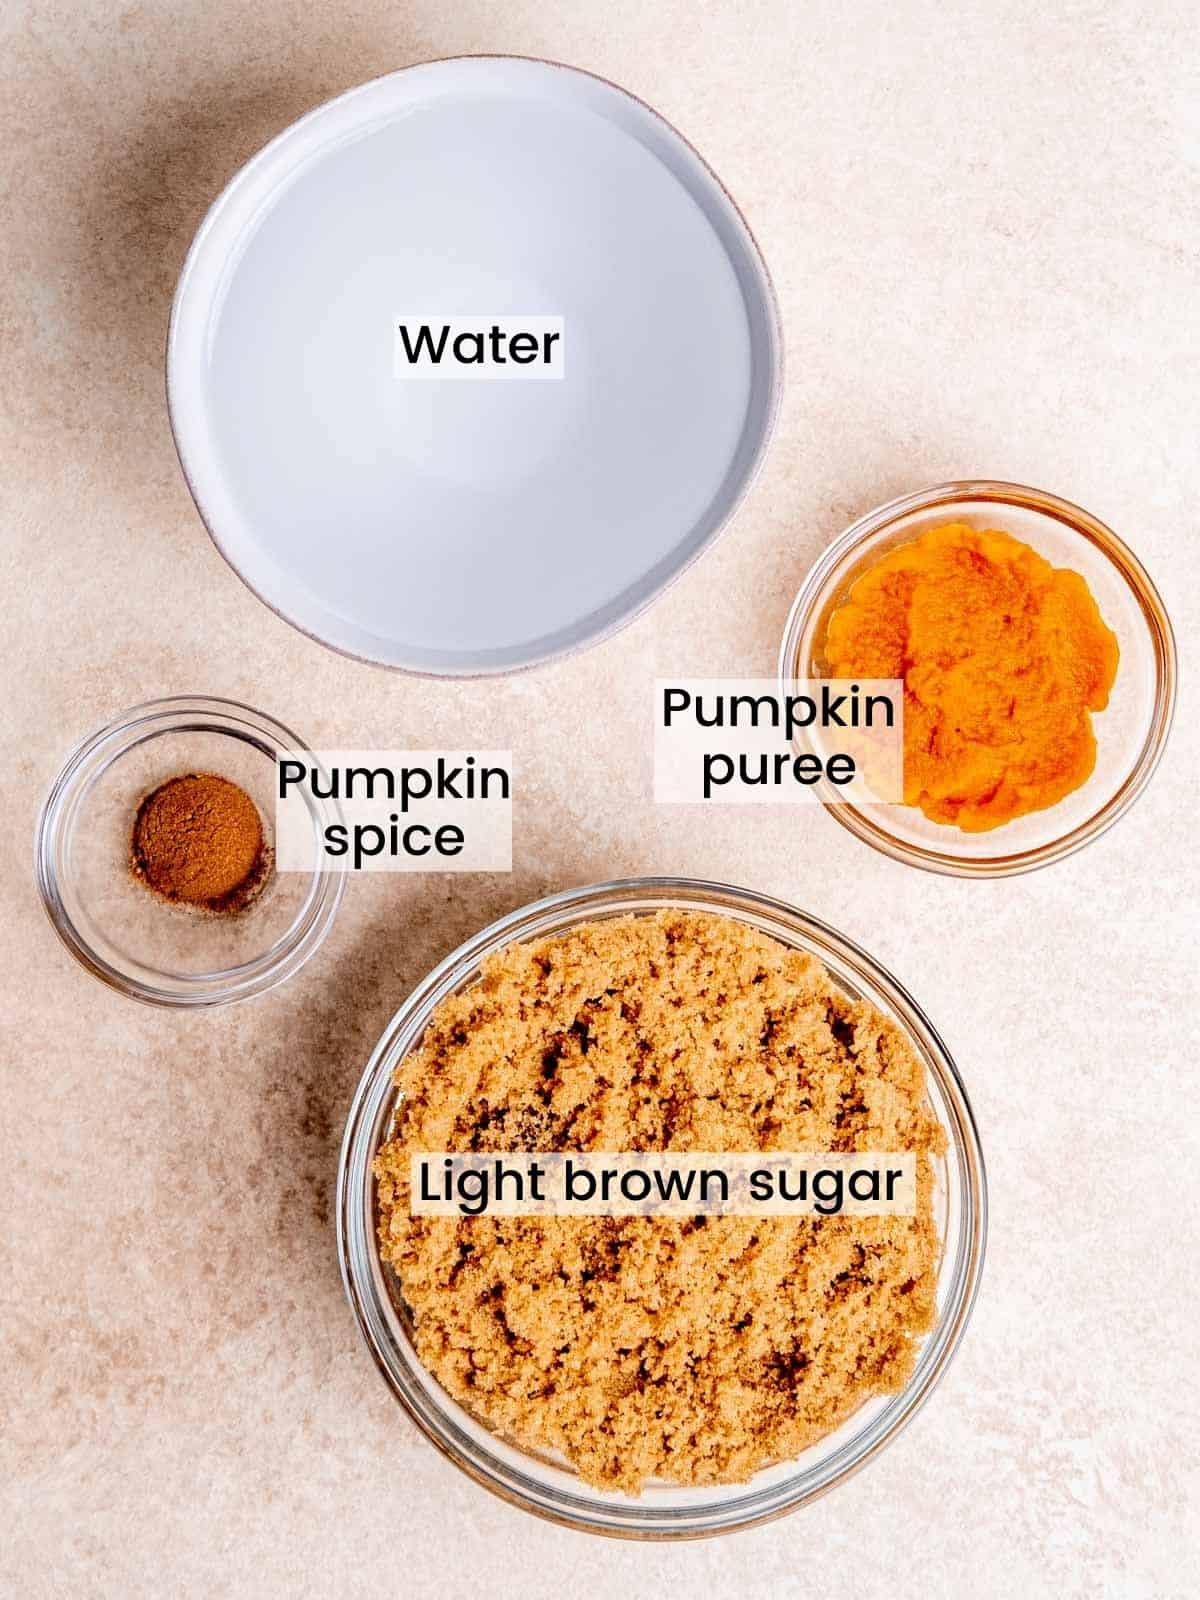 Pumpkin spice syrup ingredients labeled